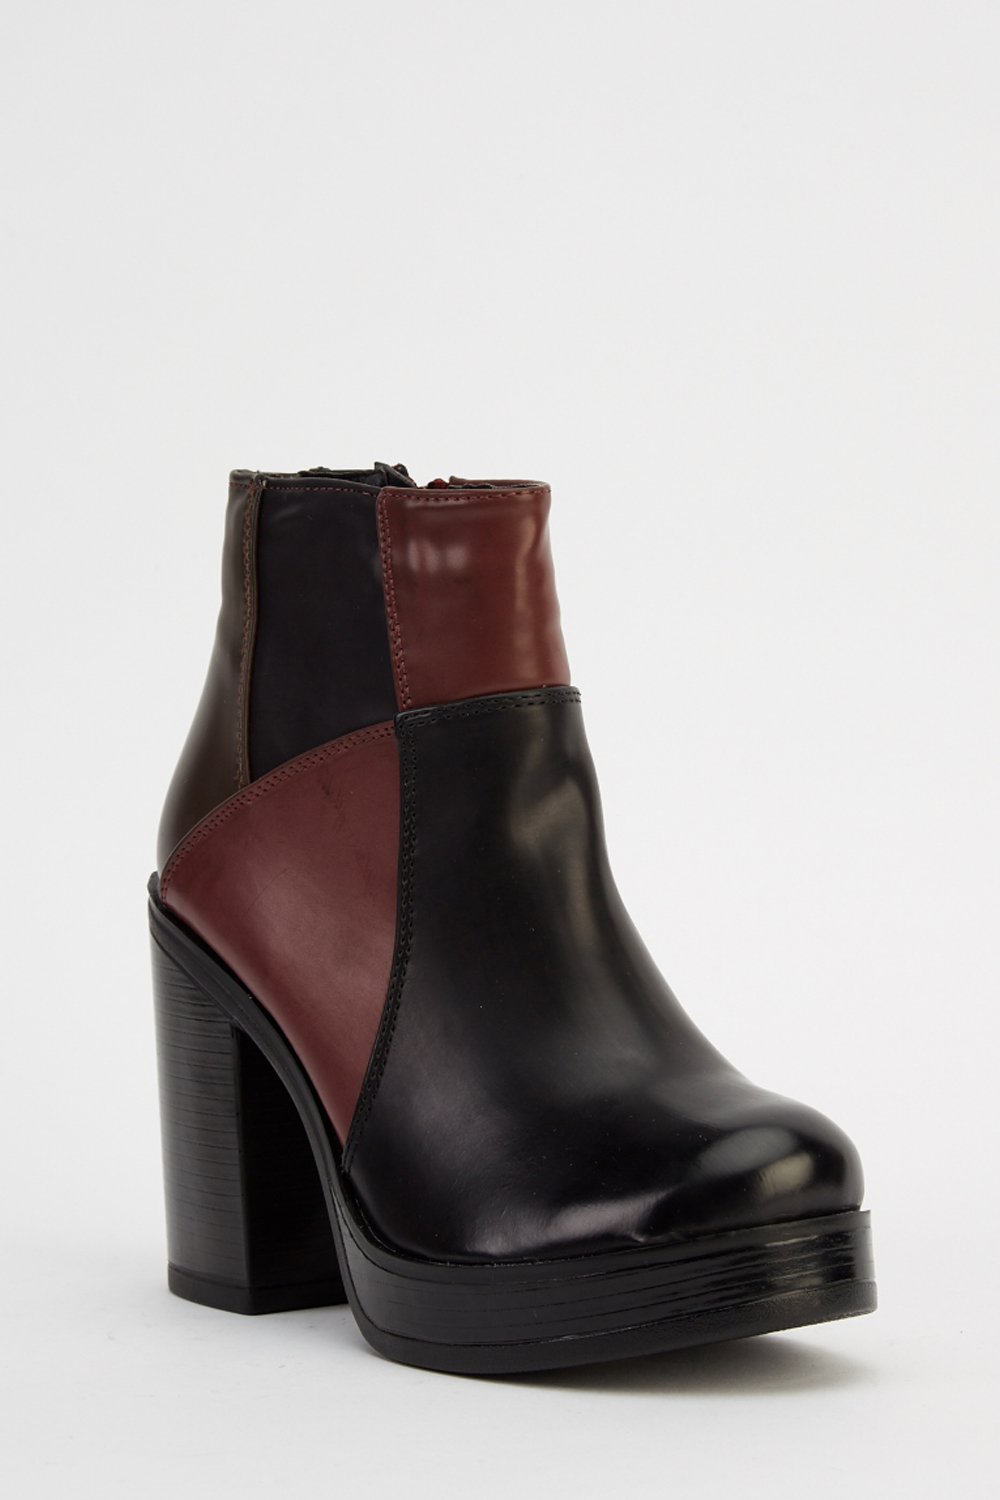 3bcc4174acf3 Colour Block Faux Leather Ankle Boots - Just £5